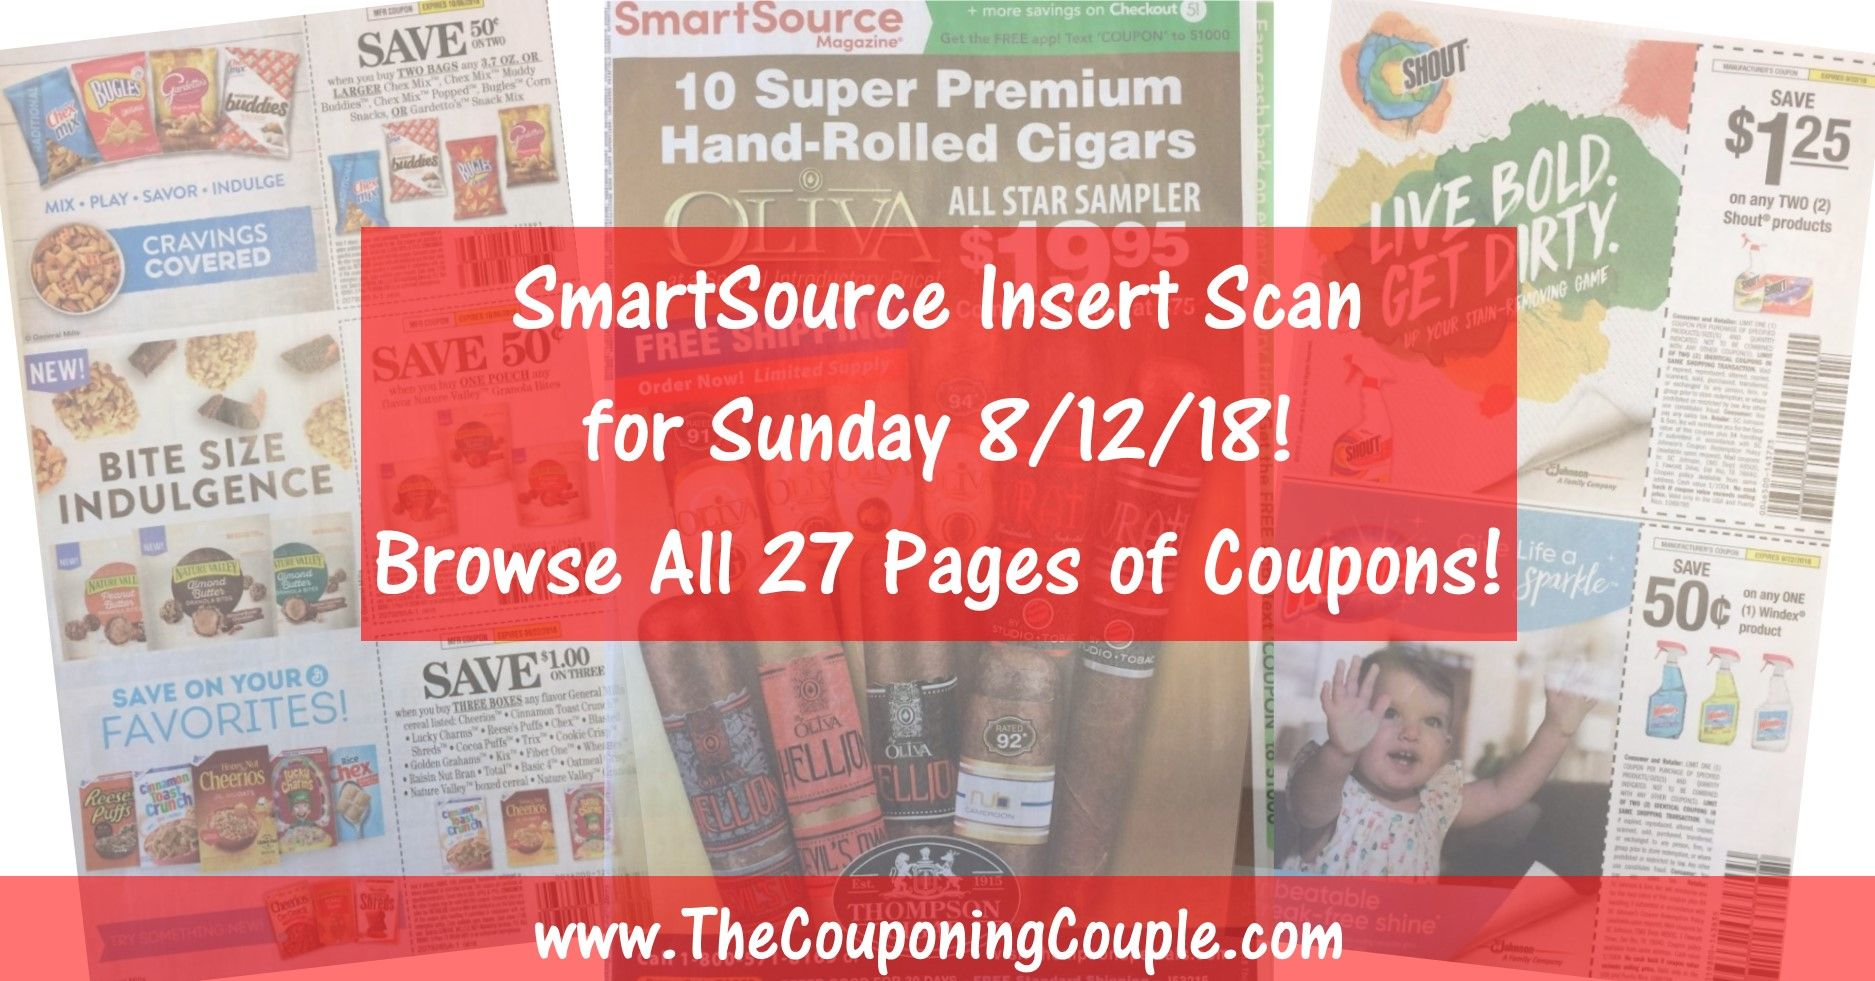 Smartsource Insert Scan 3 22 20 Browse The Actual Coupons Coupon Inserts Smartsource Smartsource Coupons